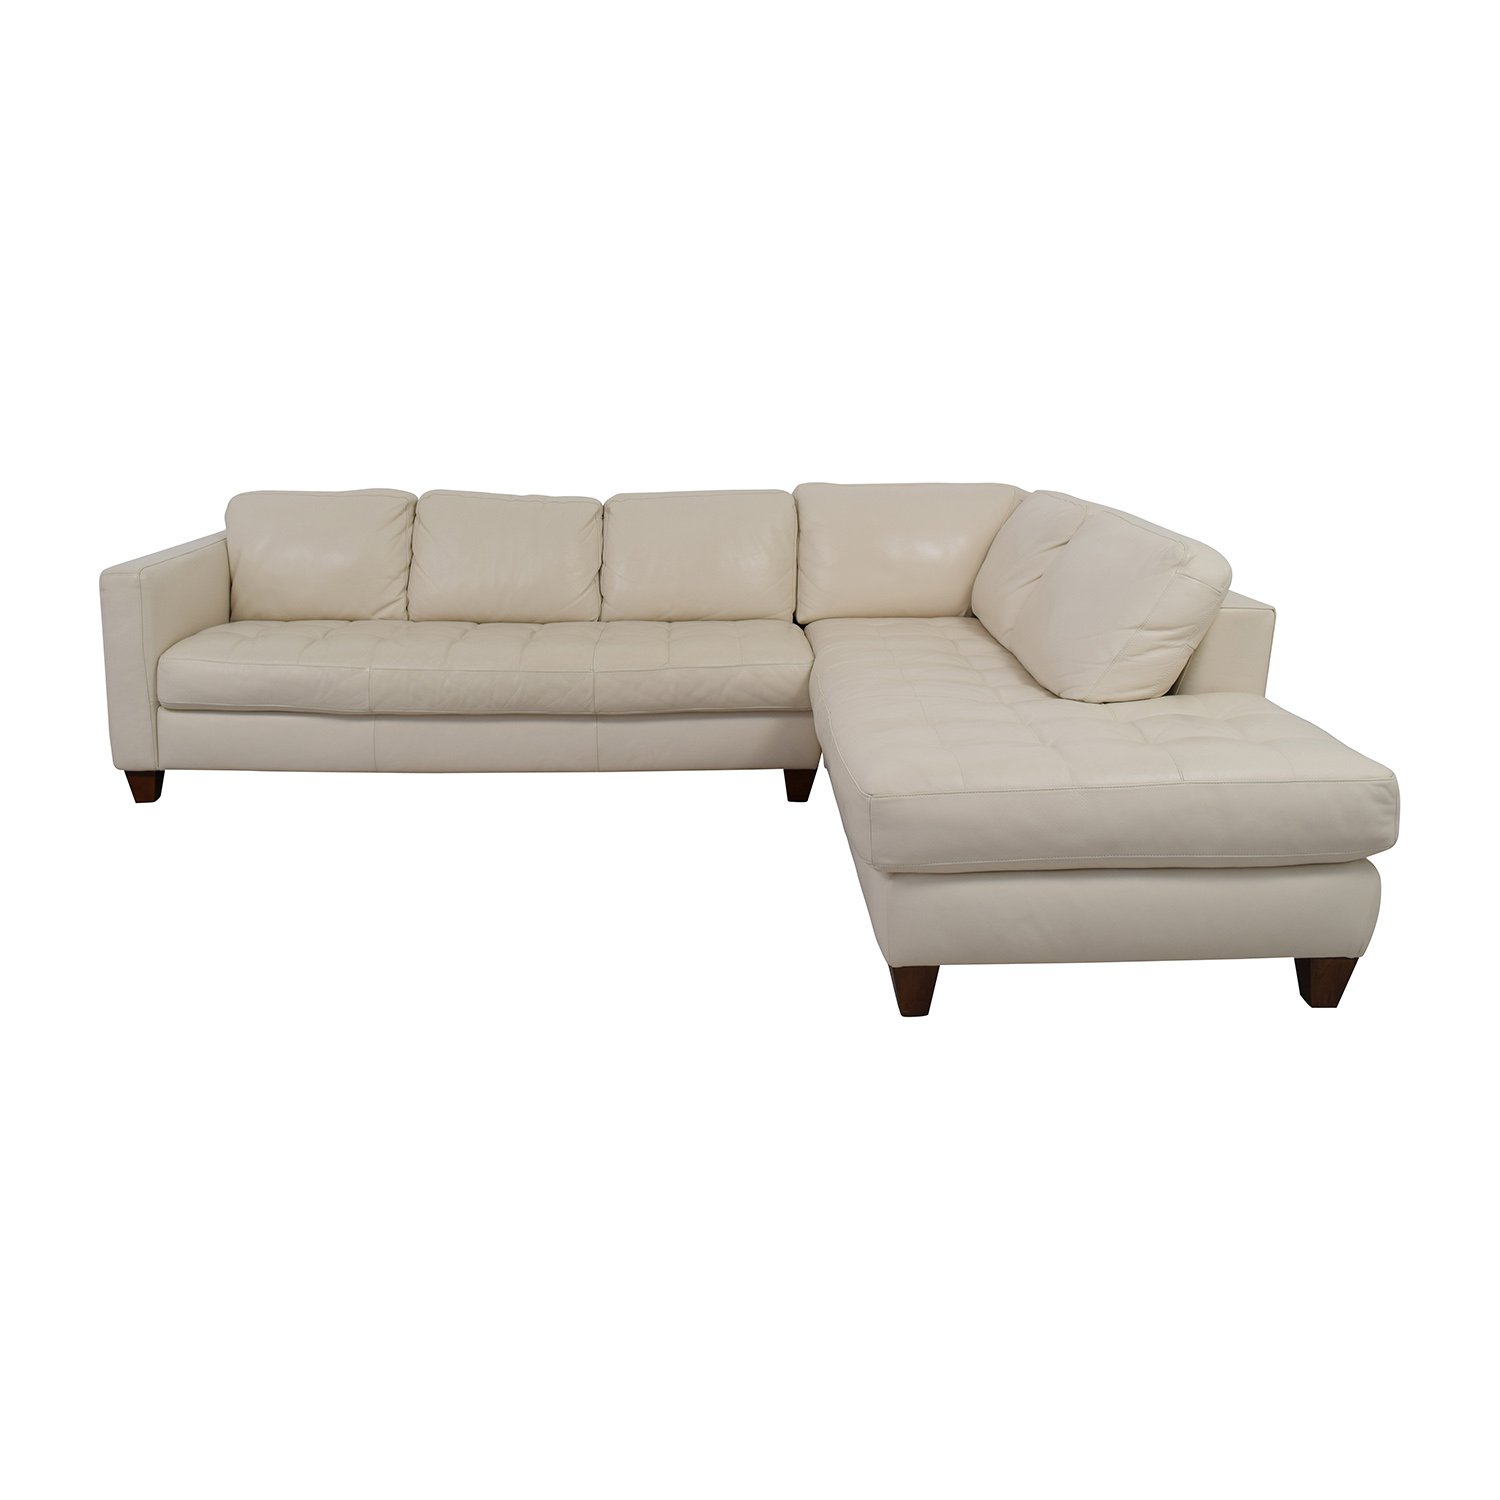 Macys Leather Chair 72 Off Macy S Macy S Milano White Leather Two Piece Sofa Sofas